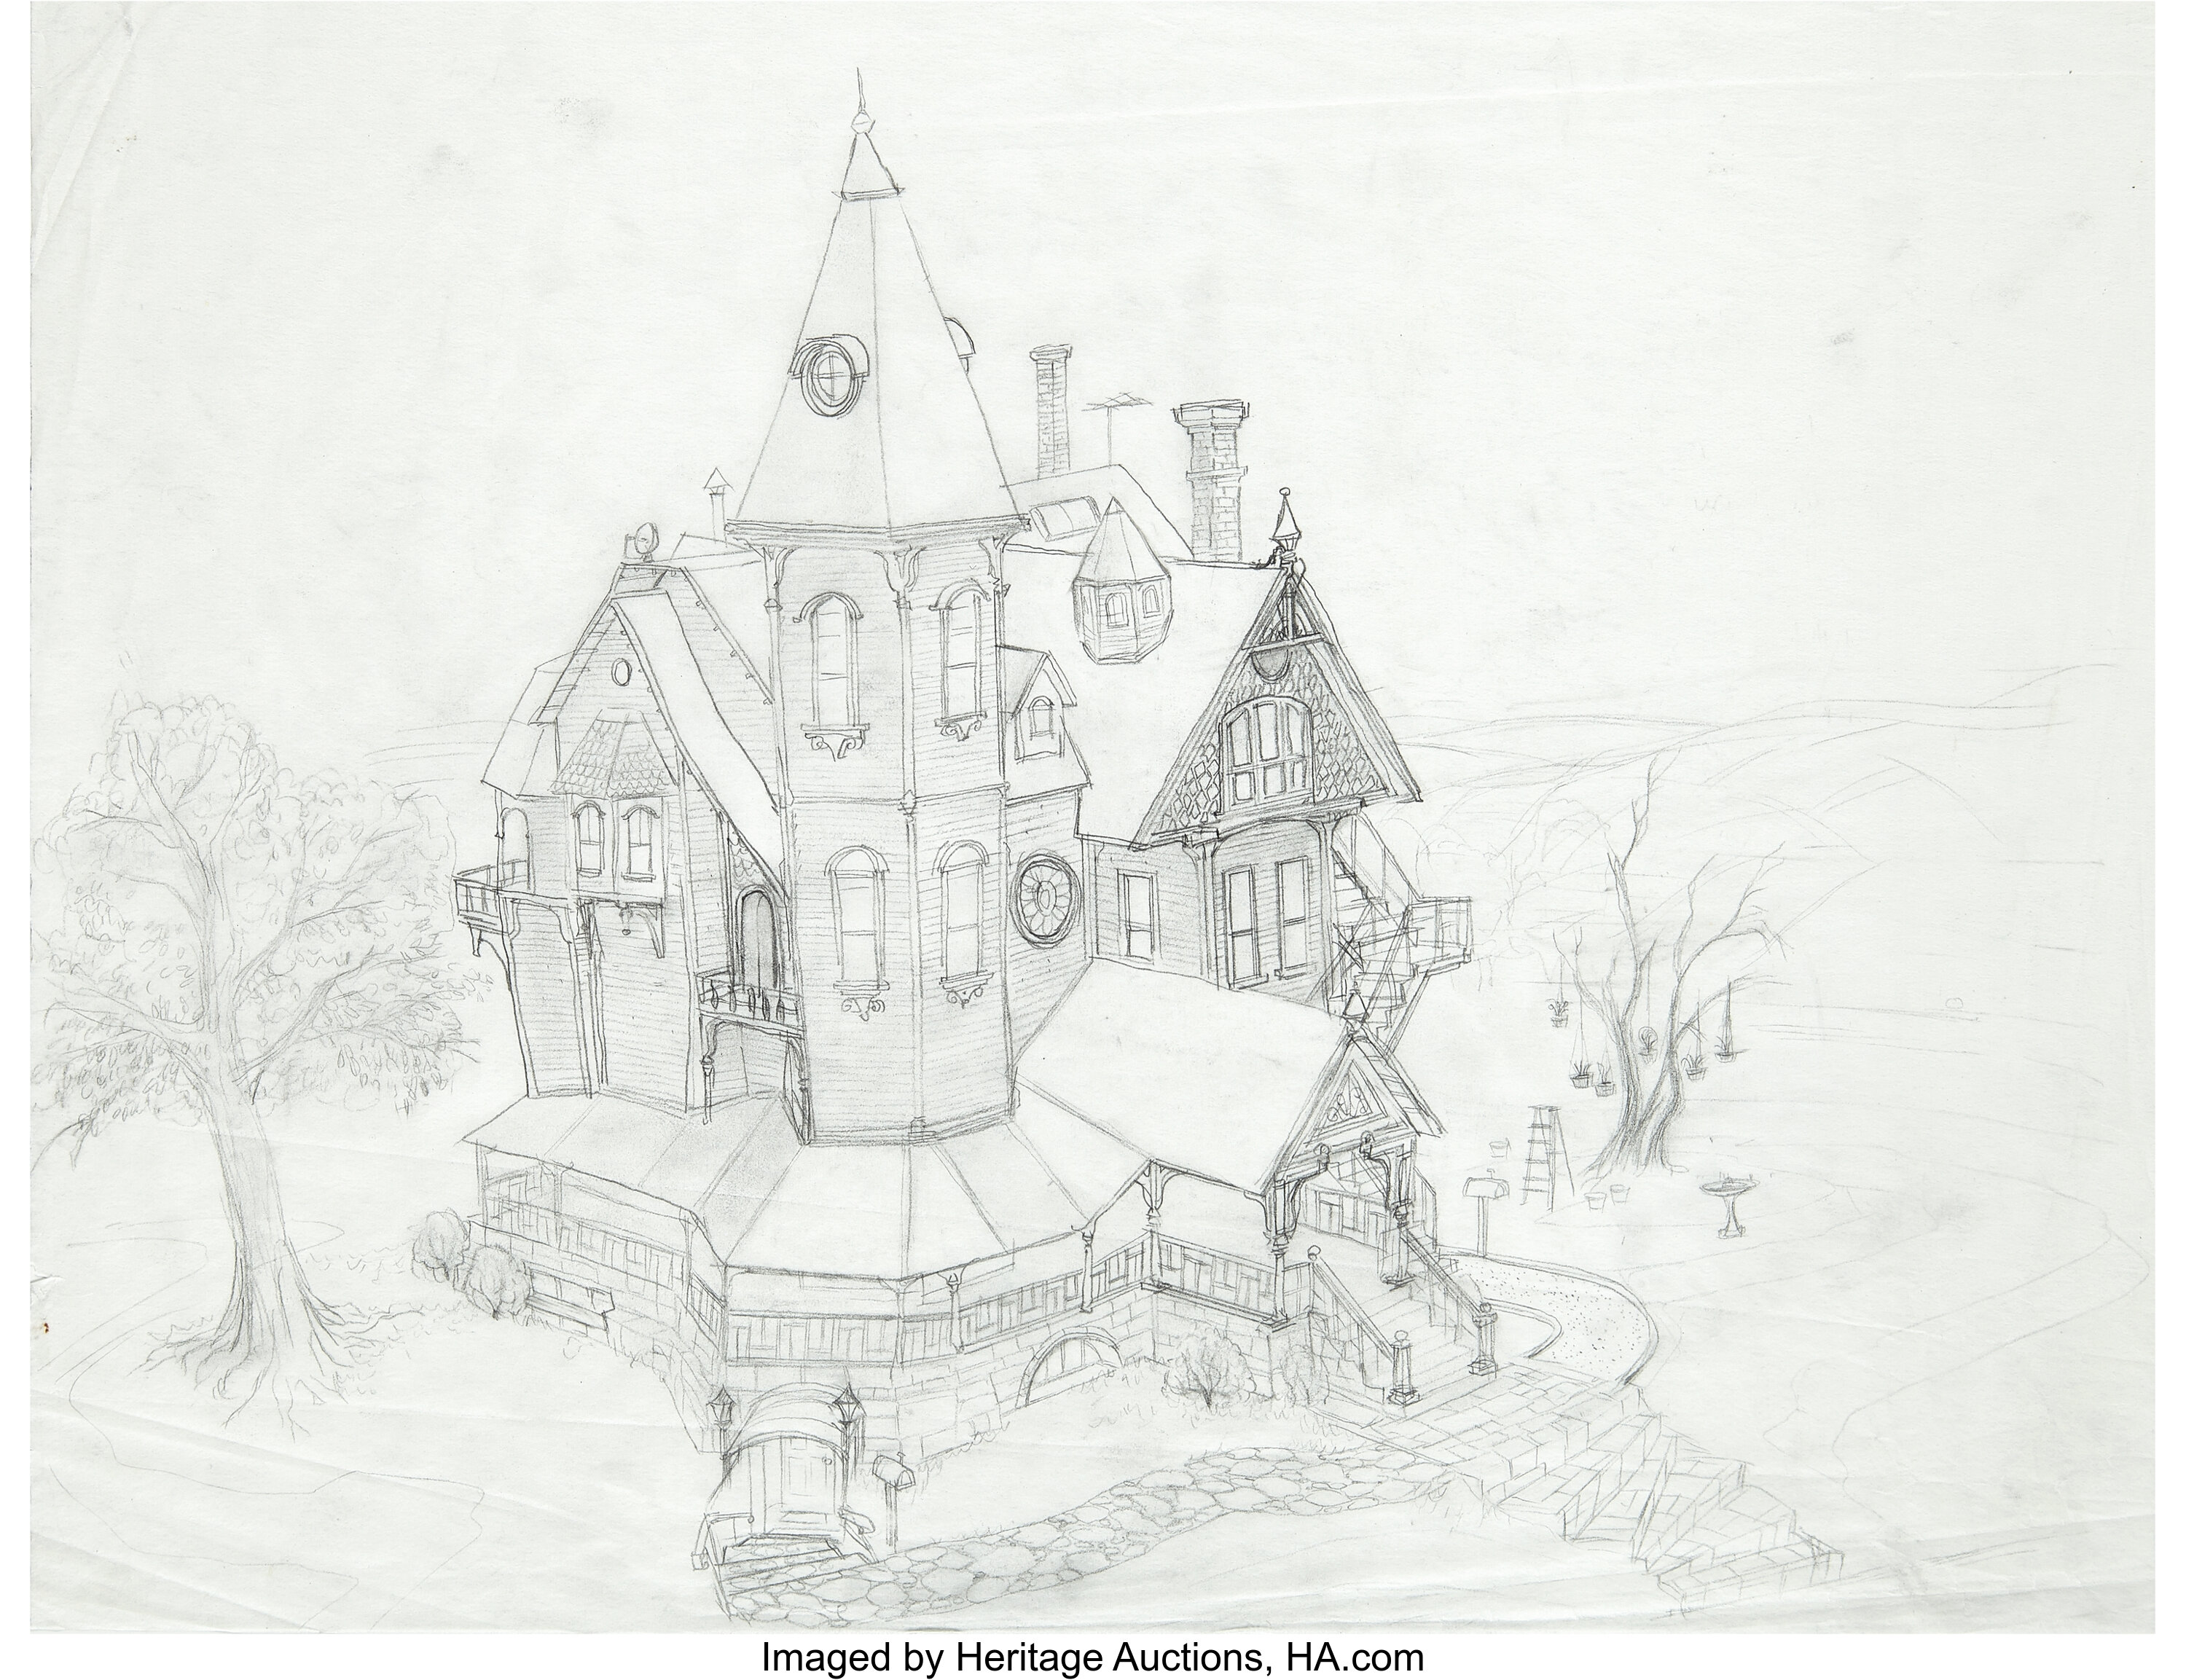 Coraline Pink Palace Apartments Concept Original Artwork Laika Lot 94071 Heritage Auctions